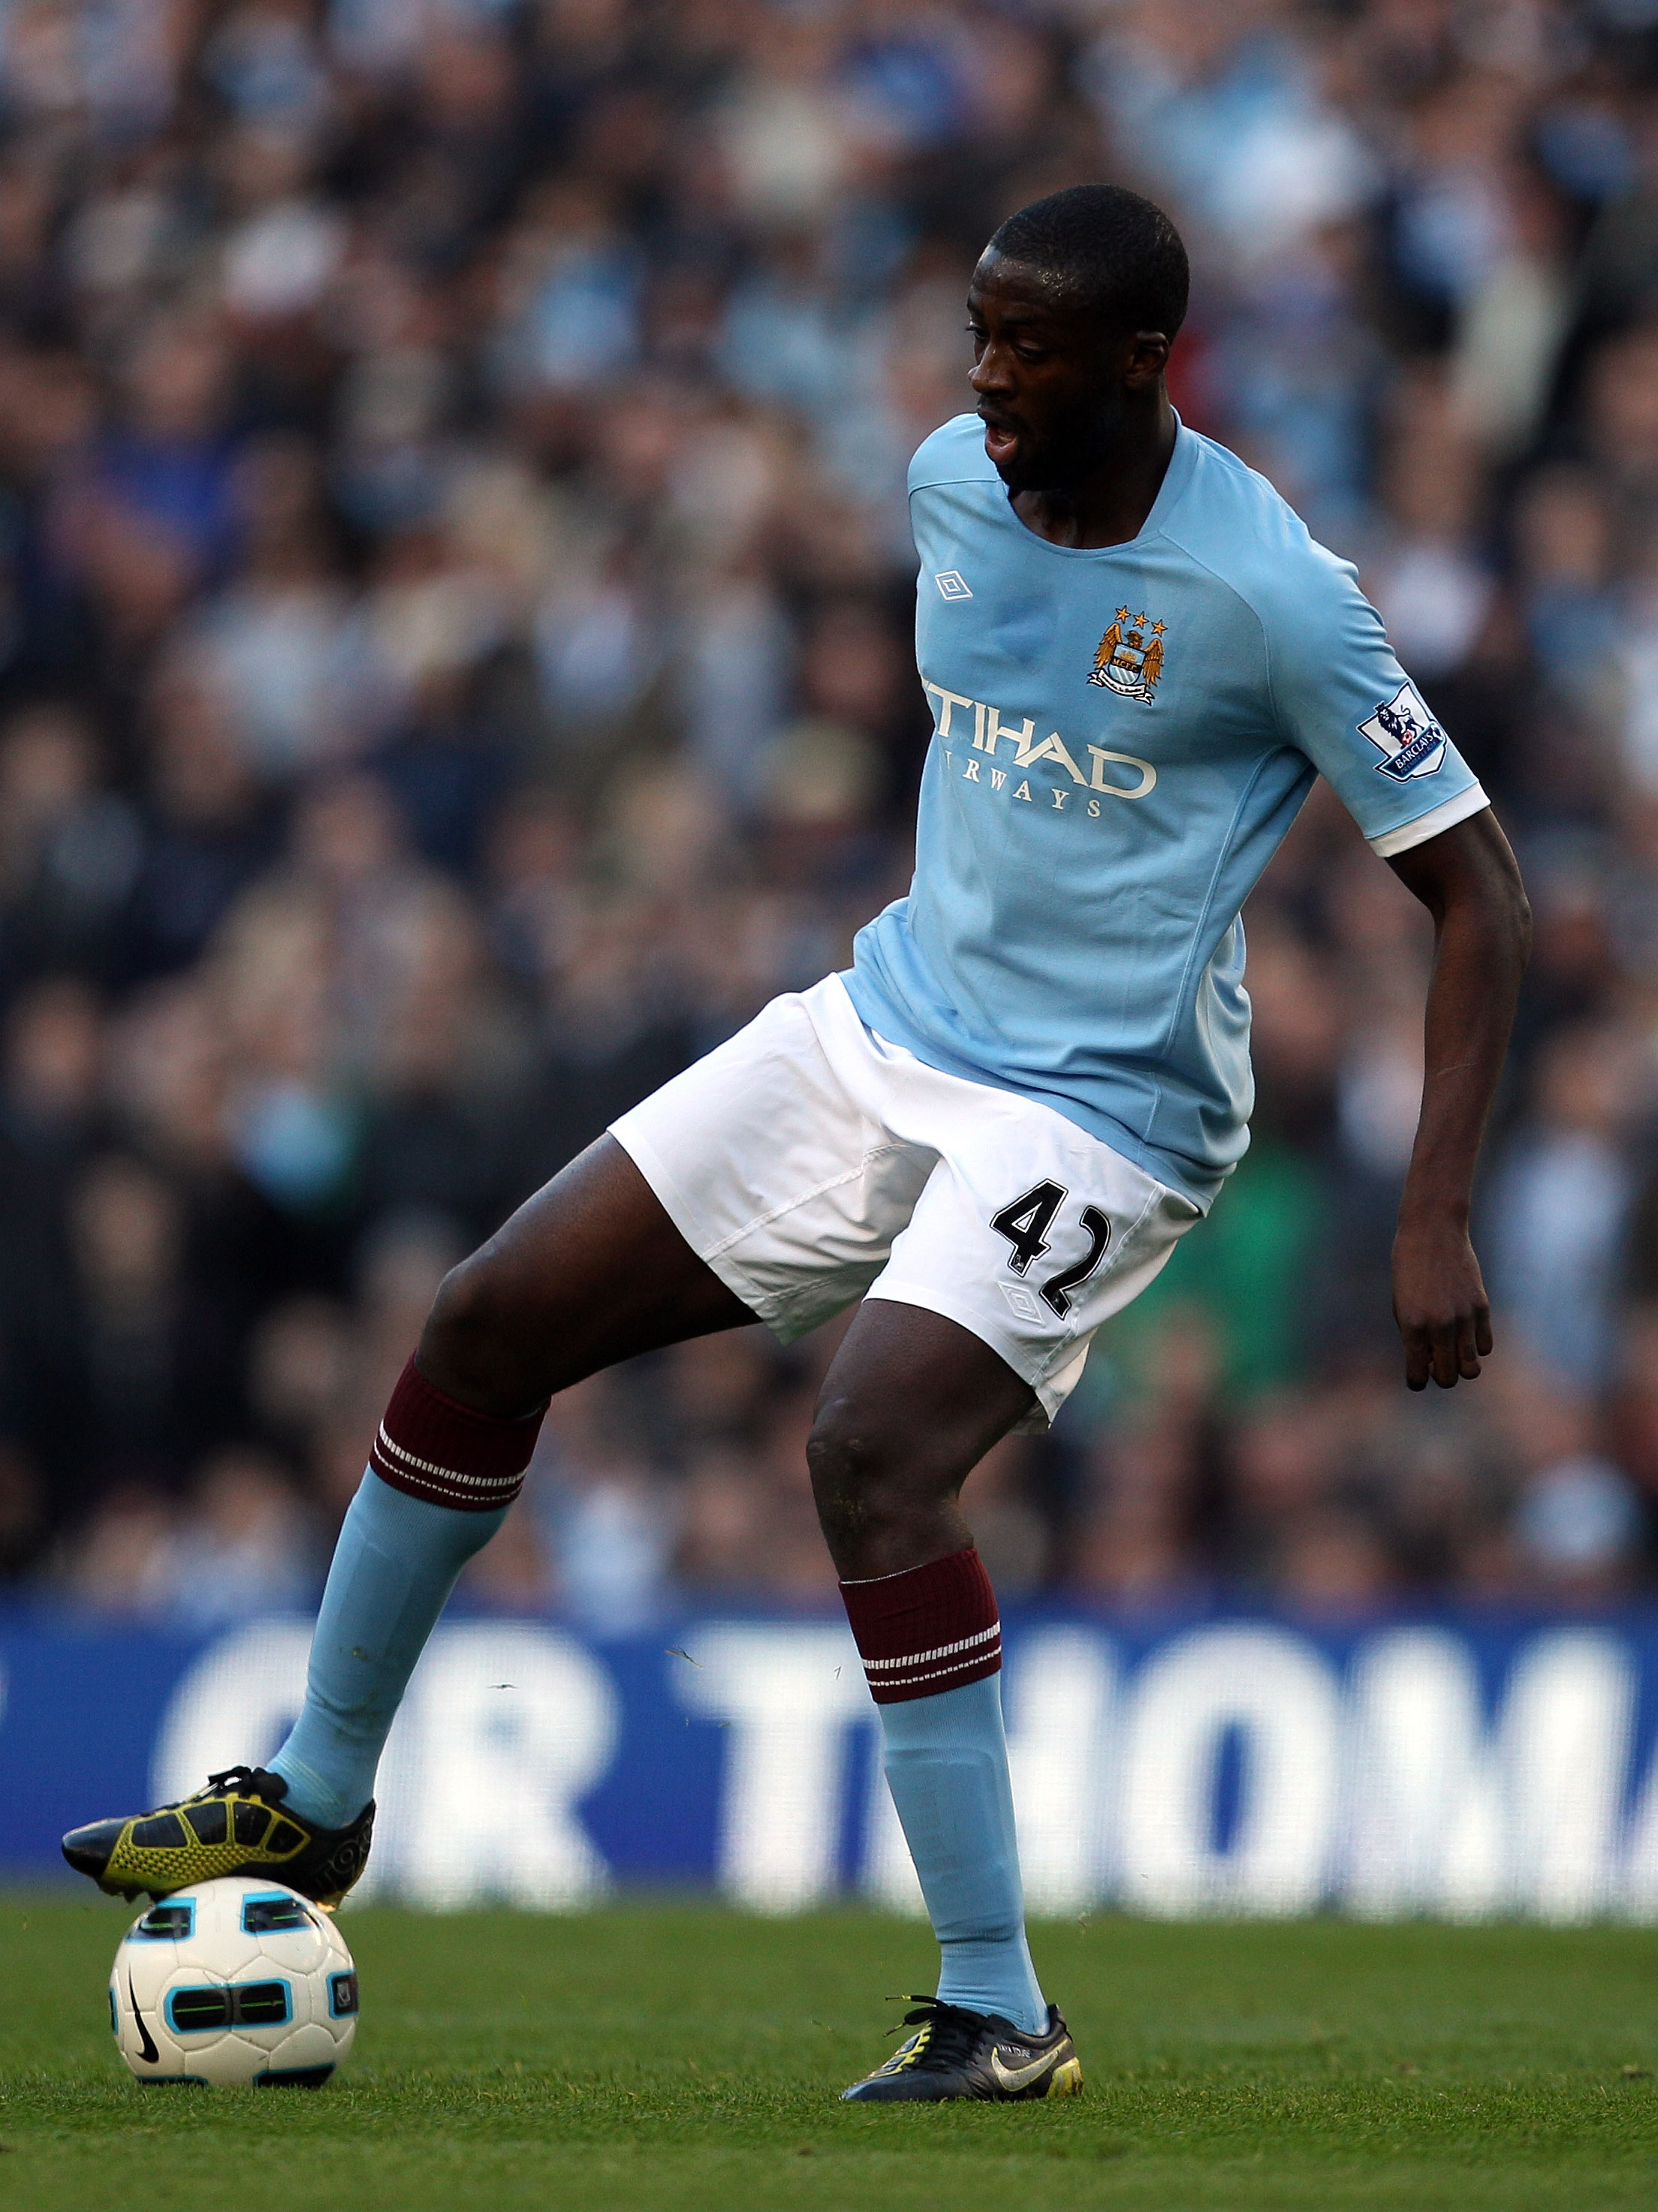 MANCHESTER, ENGLAND - OCTOBER 24:  Yaya Toure in action during the Barclays Premier League match between Manchester City and Arsenal at City of Manchester Stadium on October 24, 2010 in Manchester, England.  (Photo by Richard Heathcote/Getty Images)